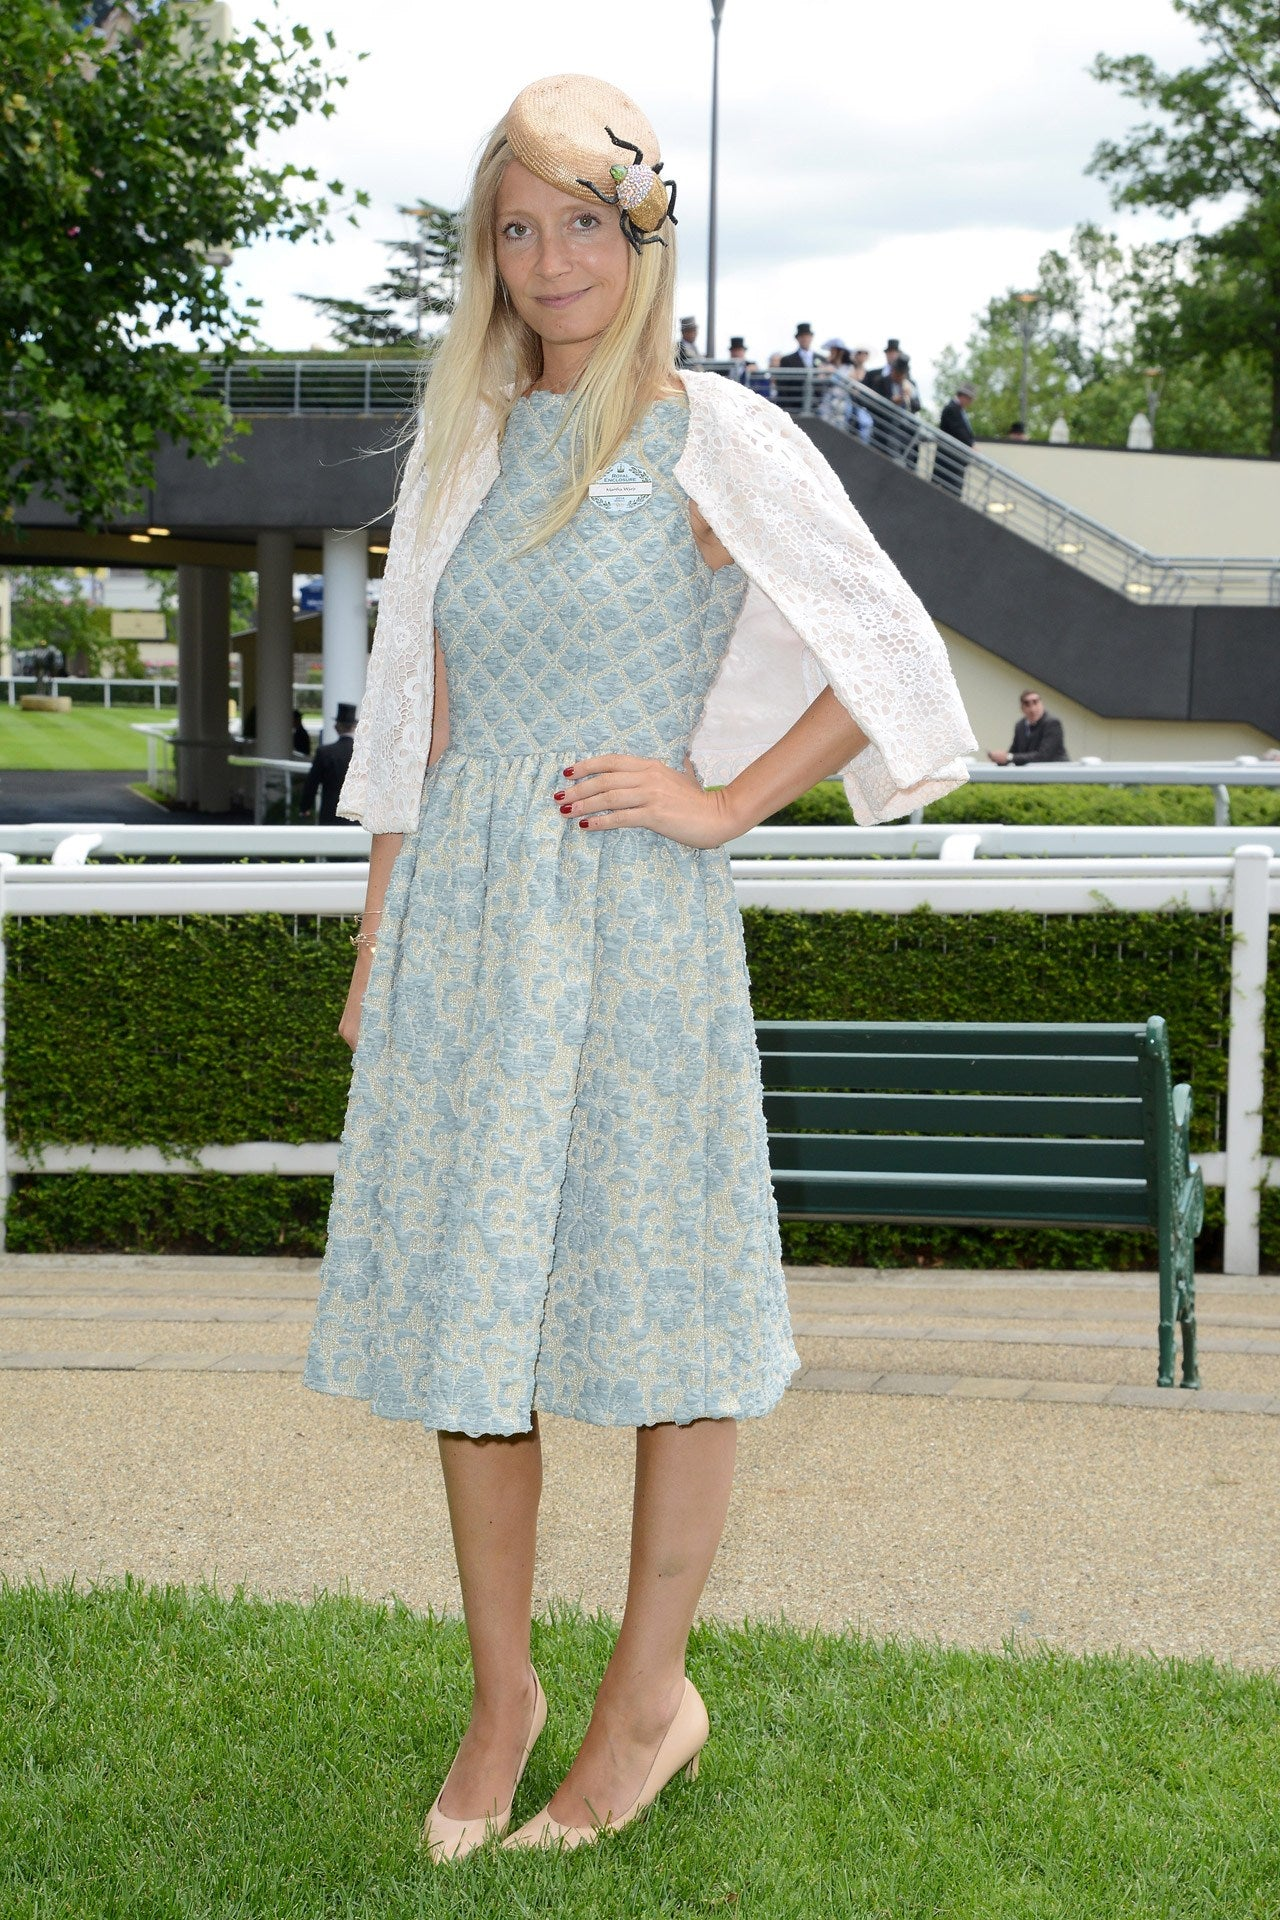 Vogue's Martha Ward wears our Marnie dress to the Royal Ascot